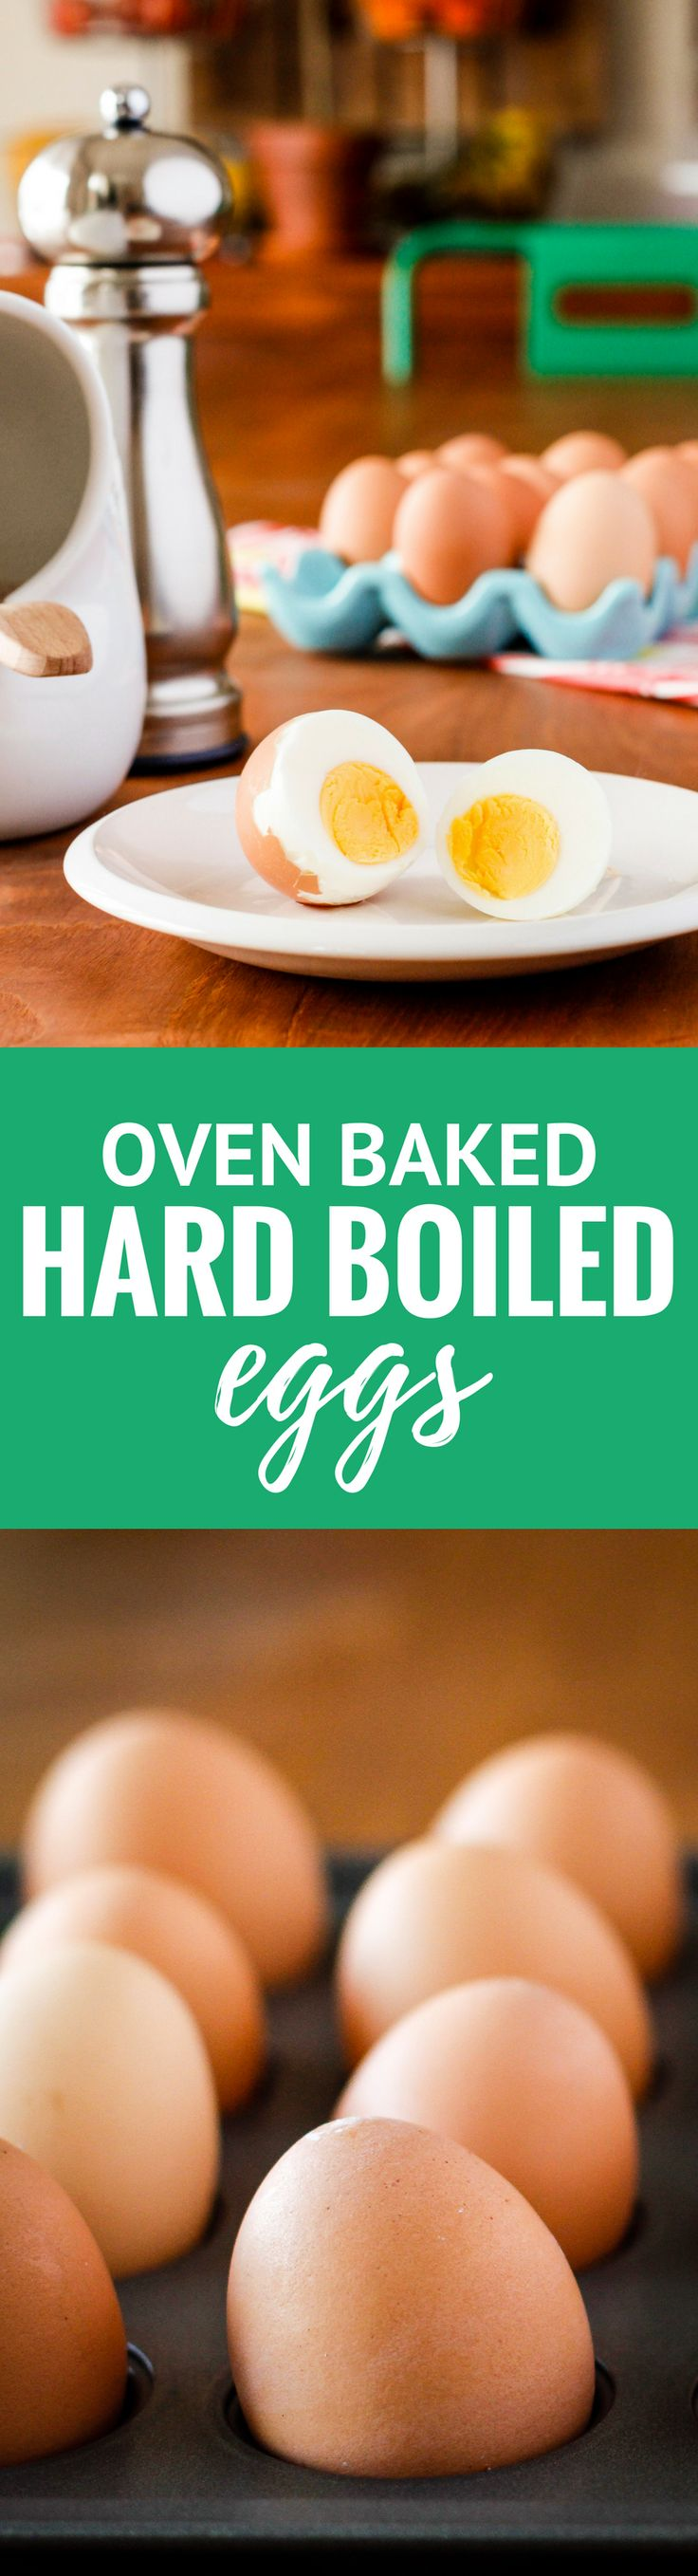 Oven Baked Hard Boiled Eggs -- Have you ever tried making baked hard boiled eggs? Baking your eggs in the oven is seriously the easiest method for perfectly cooked hard boiled eggs every time! Makes big batches a cinch… | hard boiled eggs in oven | how to bake hard boiled eggs | meal prep recipes | clean eating recipes | 21 day fix recipes | paleo recipes | whole30 recipes | find the recipe on unsophisticook.com